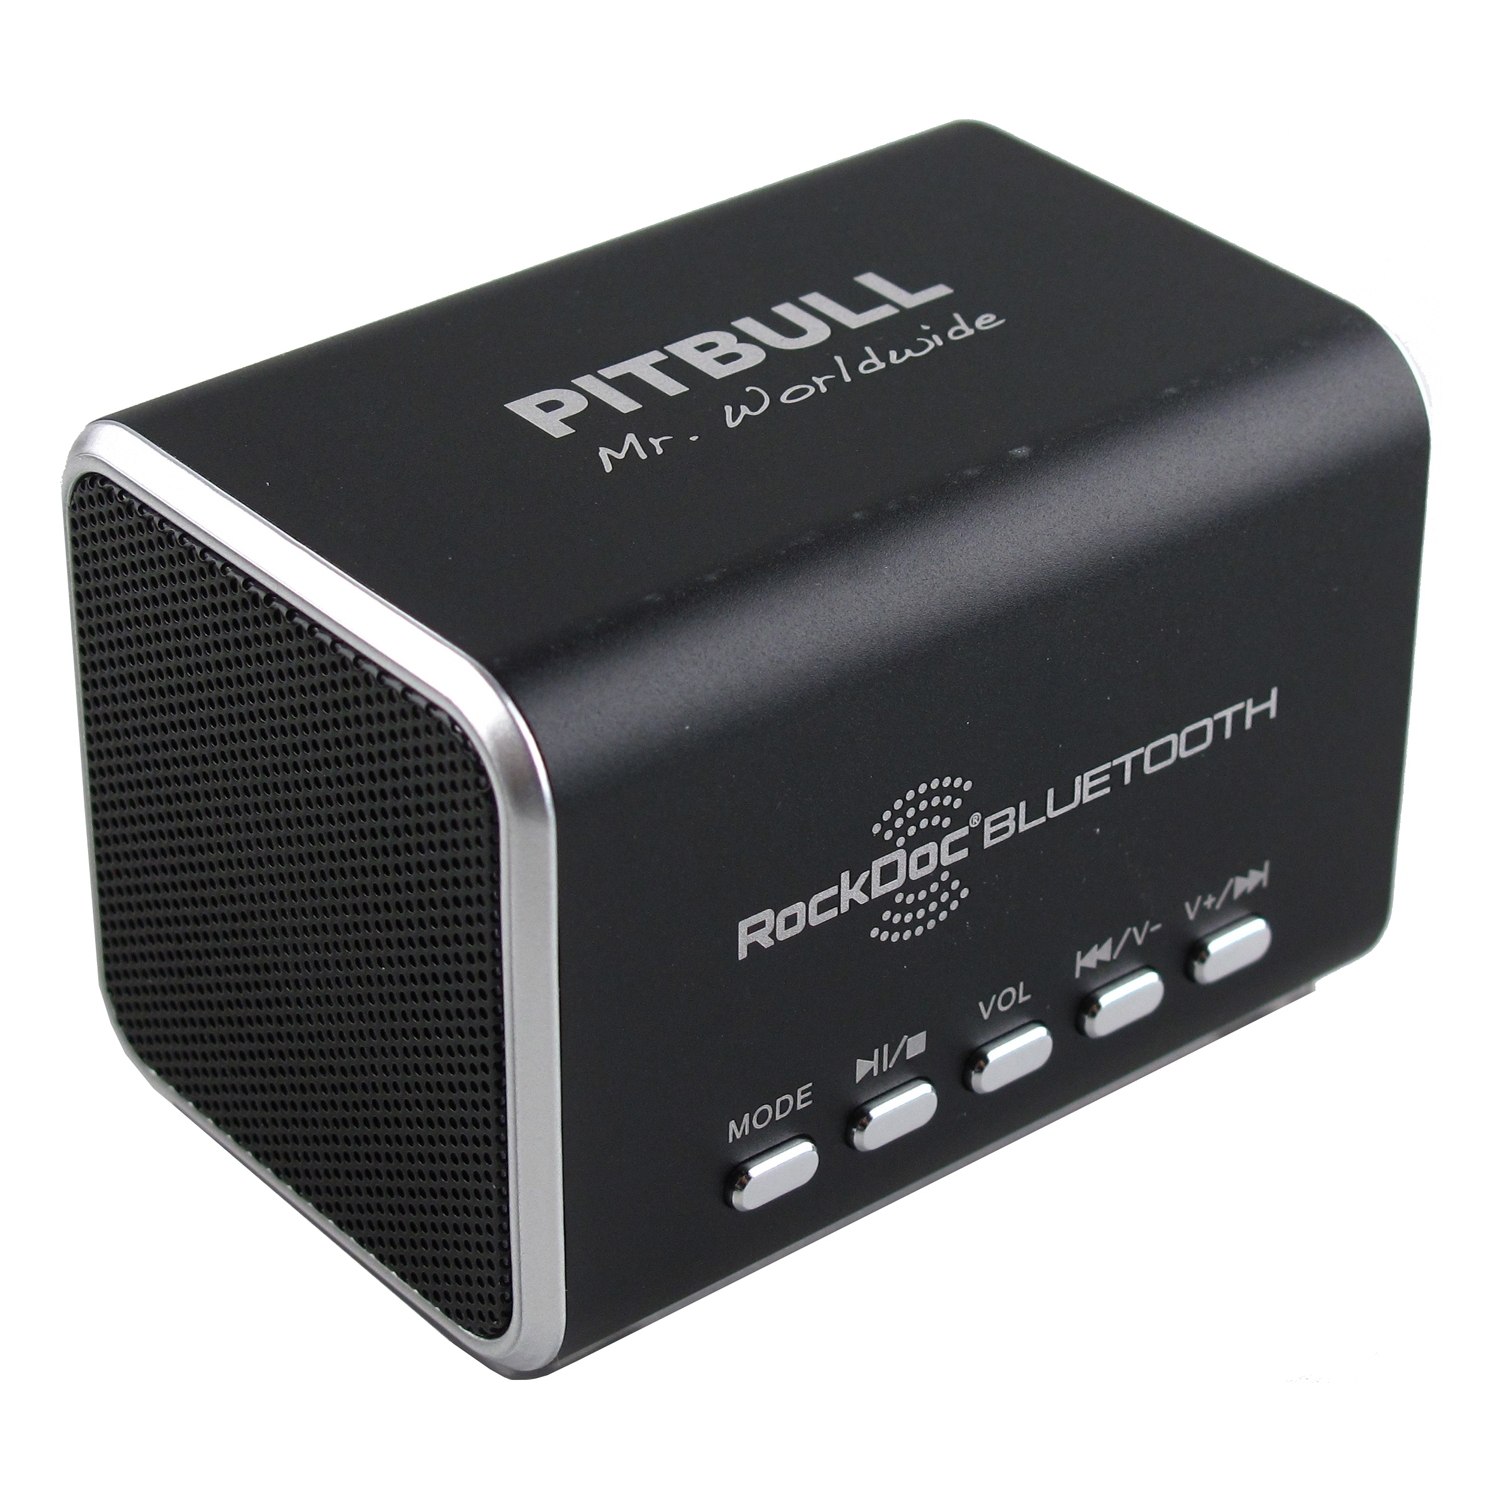 Visiontek RockDoc Bluetooth 2-Way Speaker (Black)